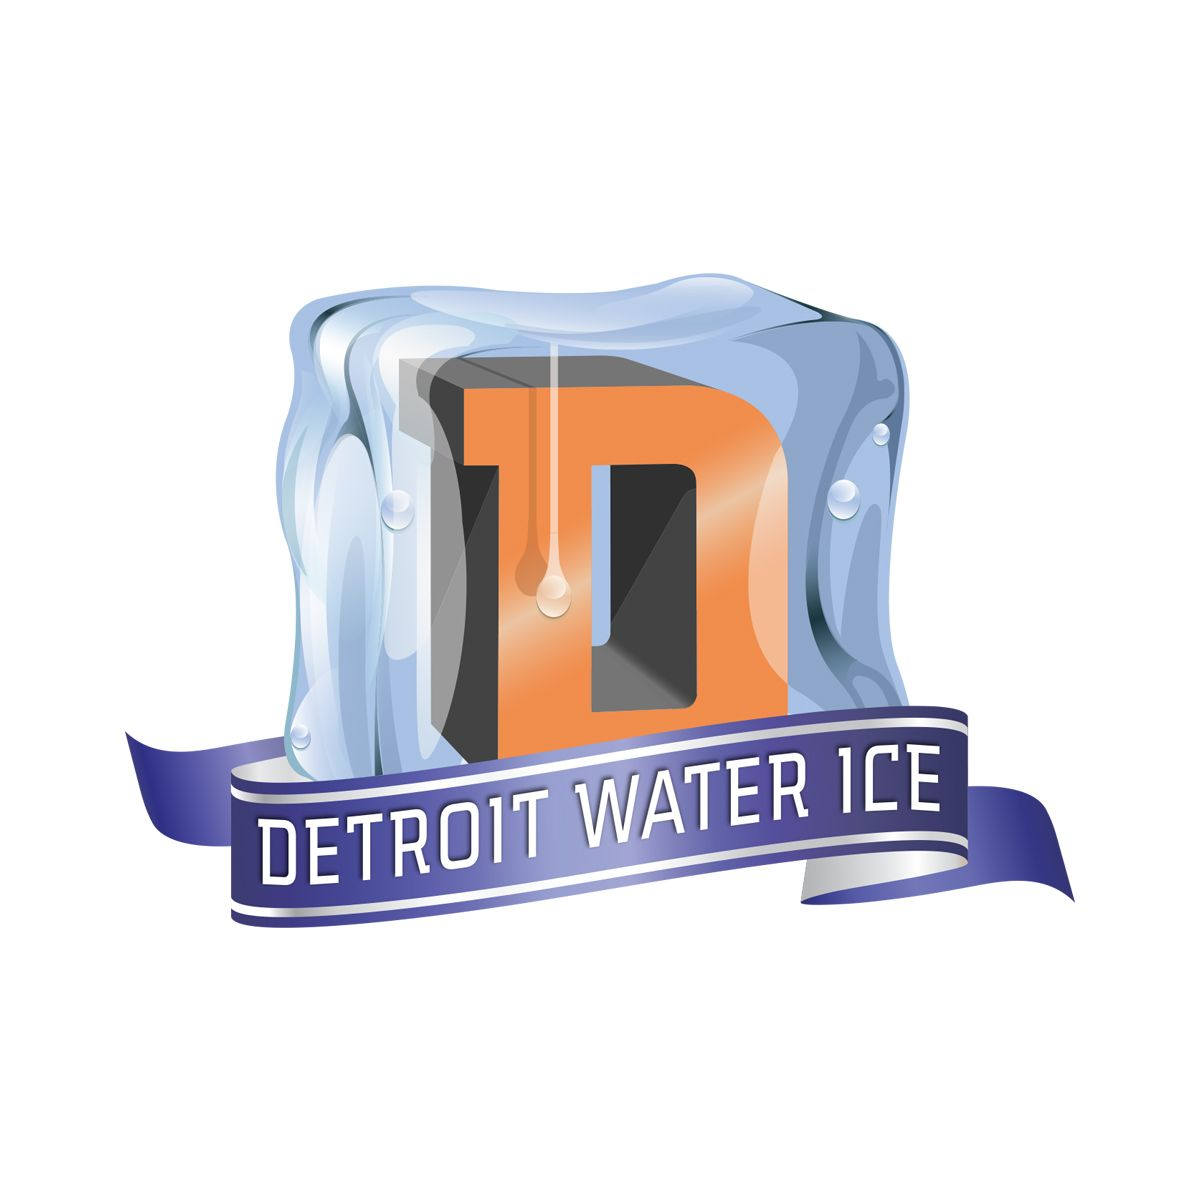 DetroitWaterIce-TOL-2019